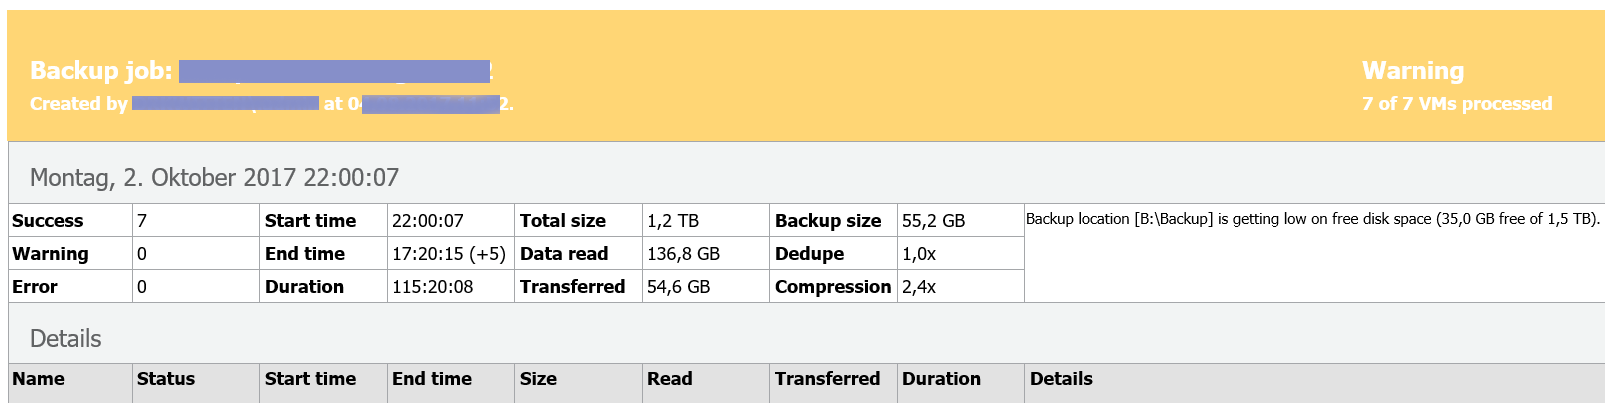 Veeam Backup Location is getting low on free disk space